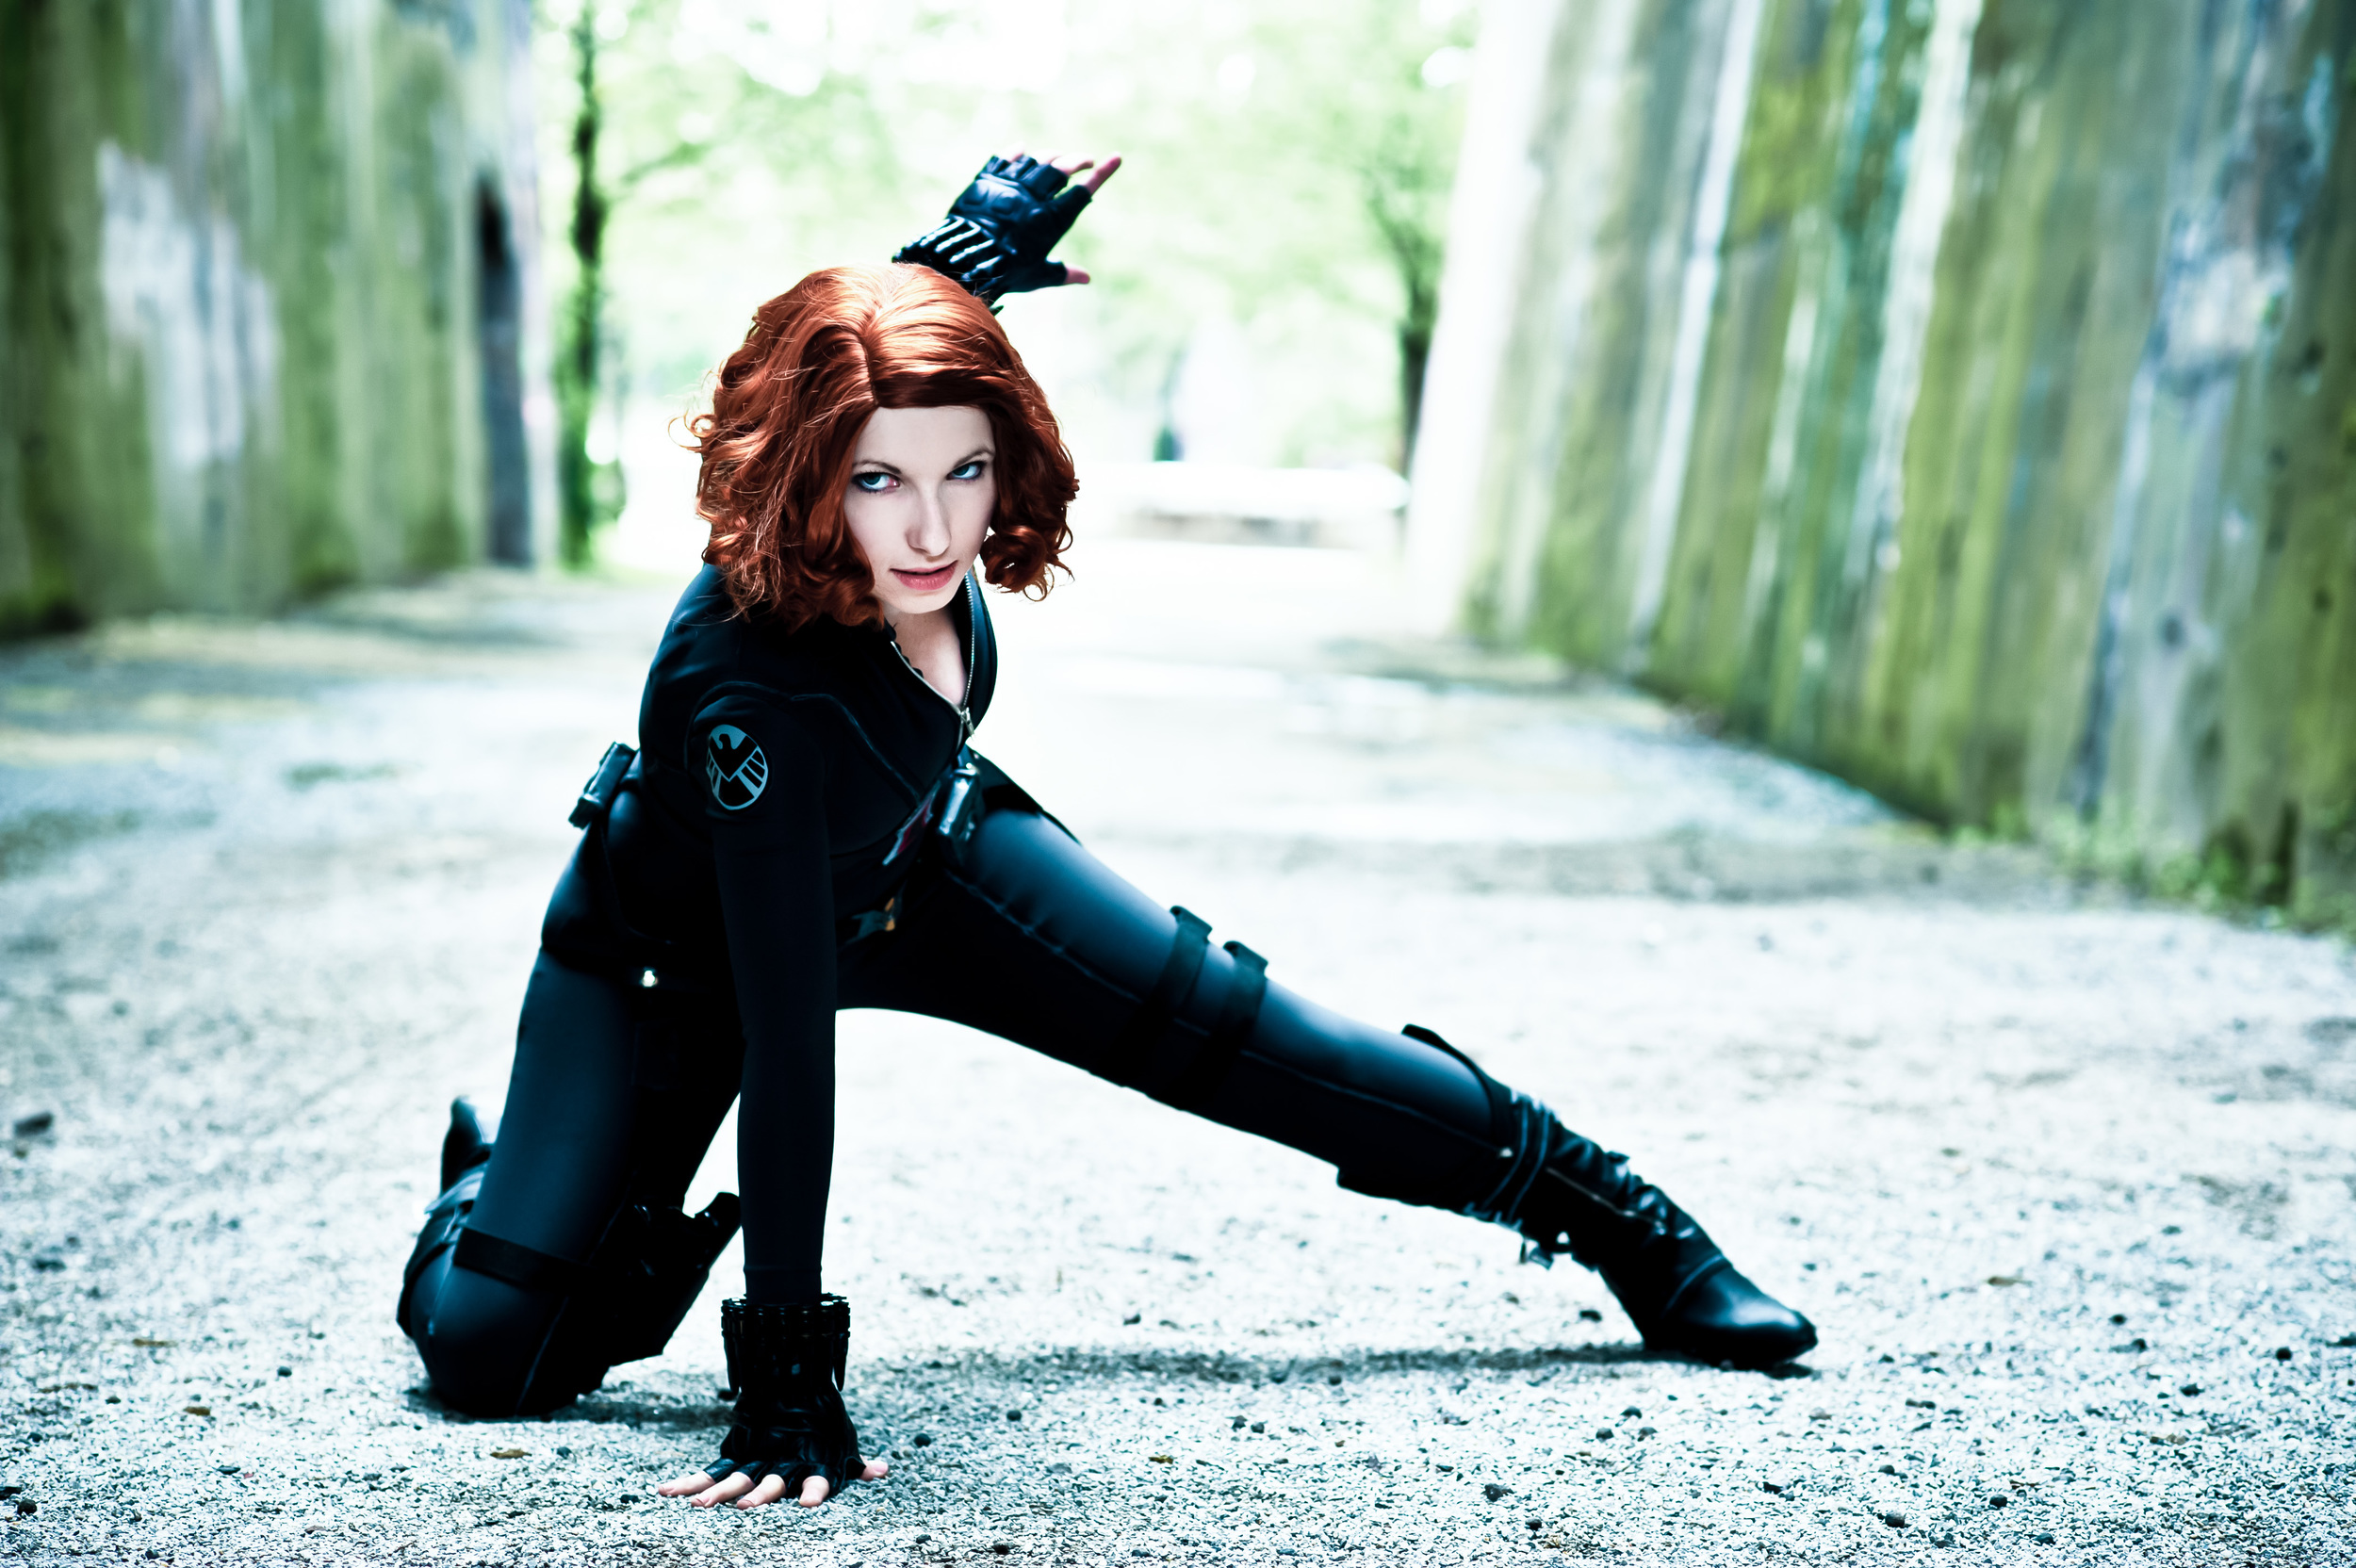 Rayi-Kun  is Black Widow | Photo by:  Franky-Chan